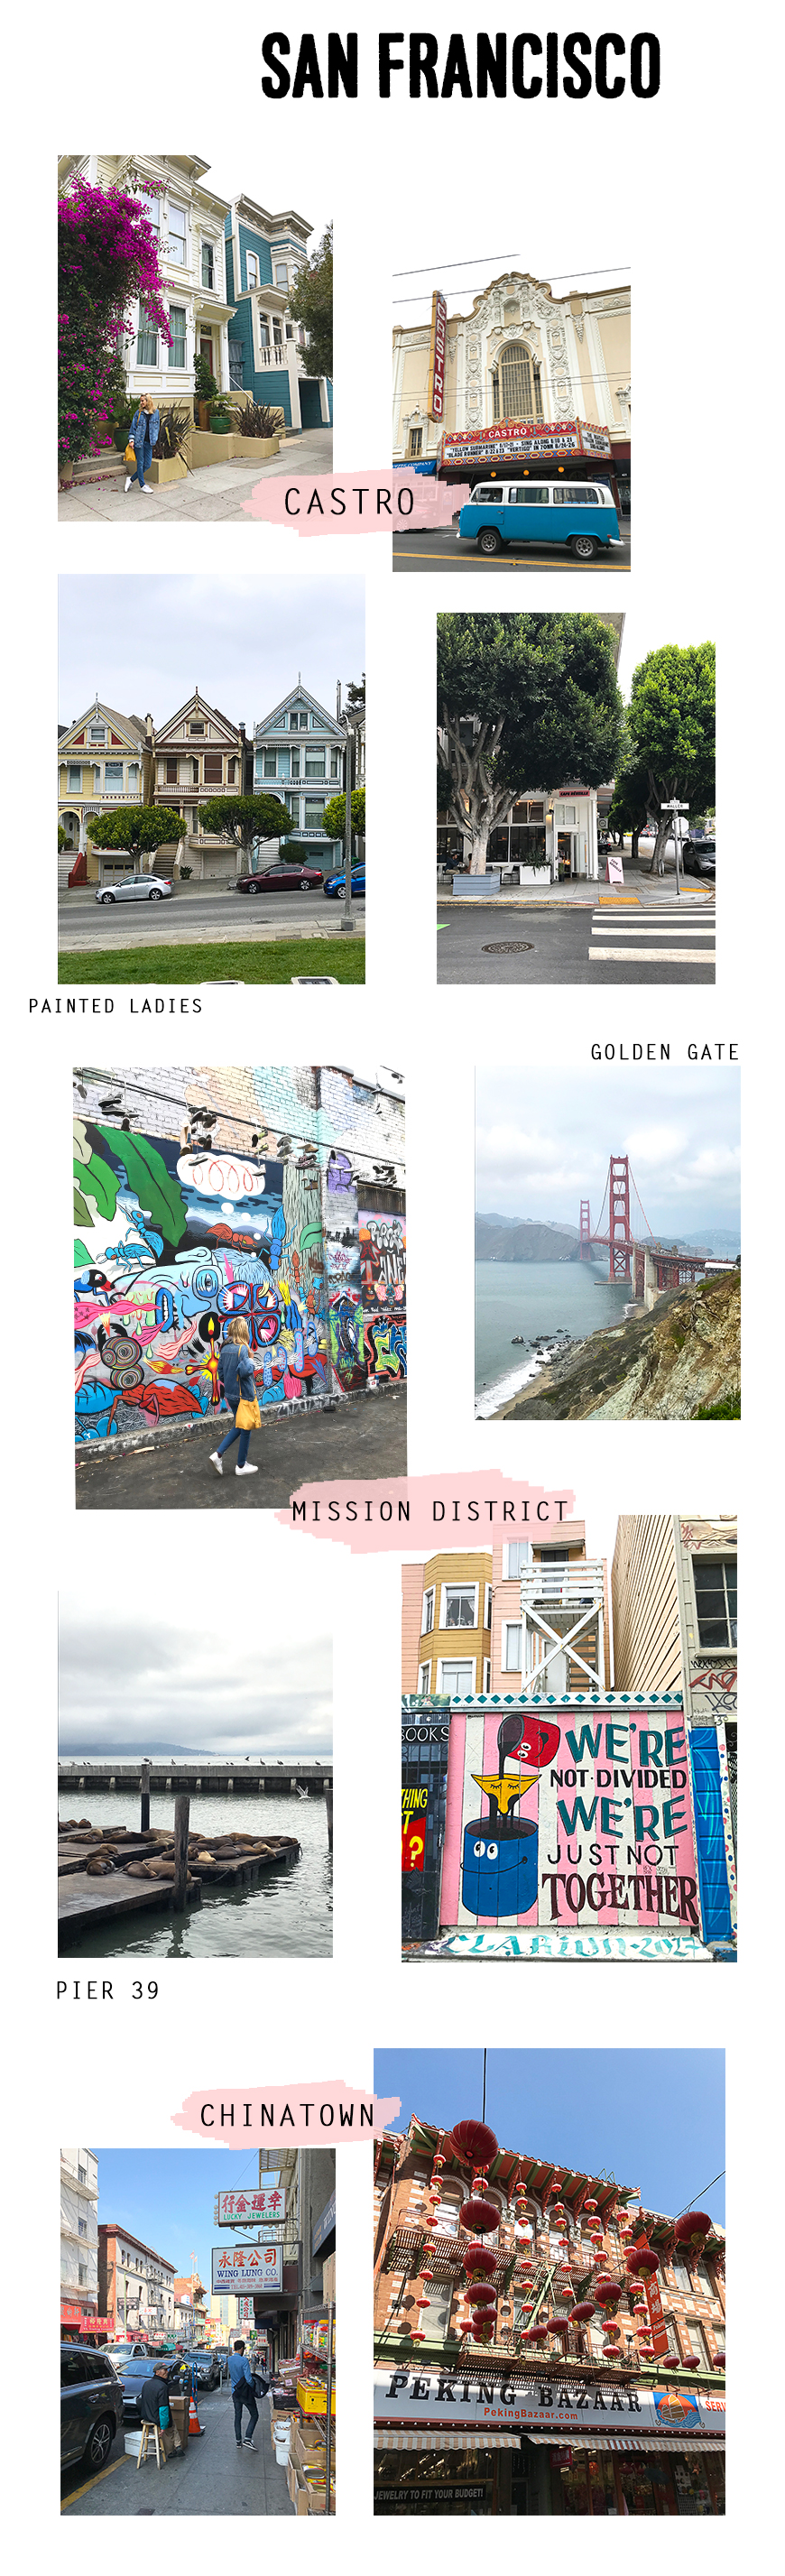 san-francisco-road-trip-usa-adresse-tips-mademoiselle-claudine-